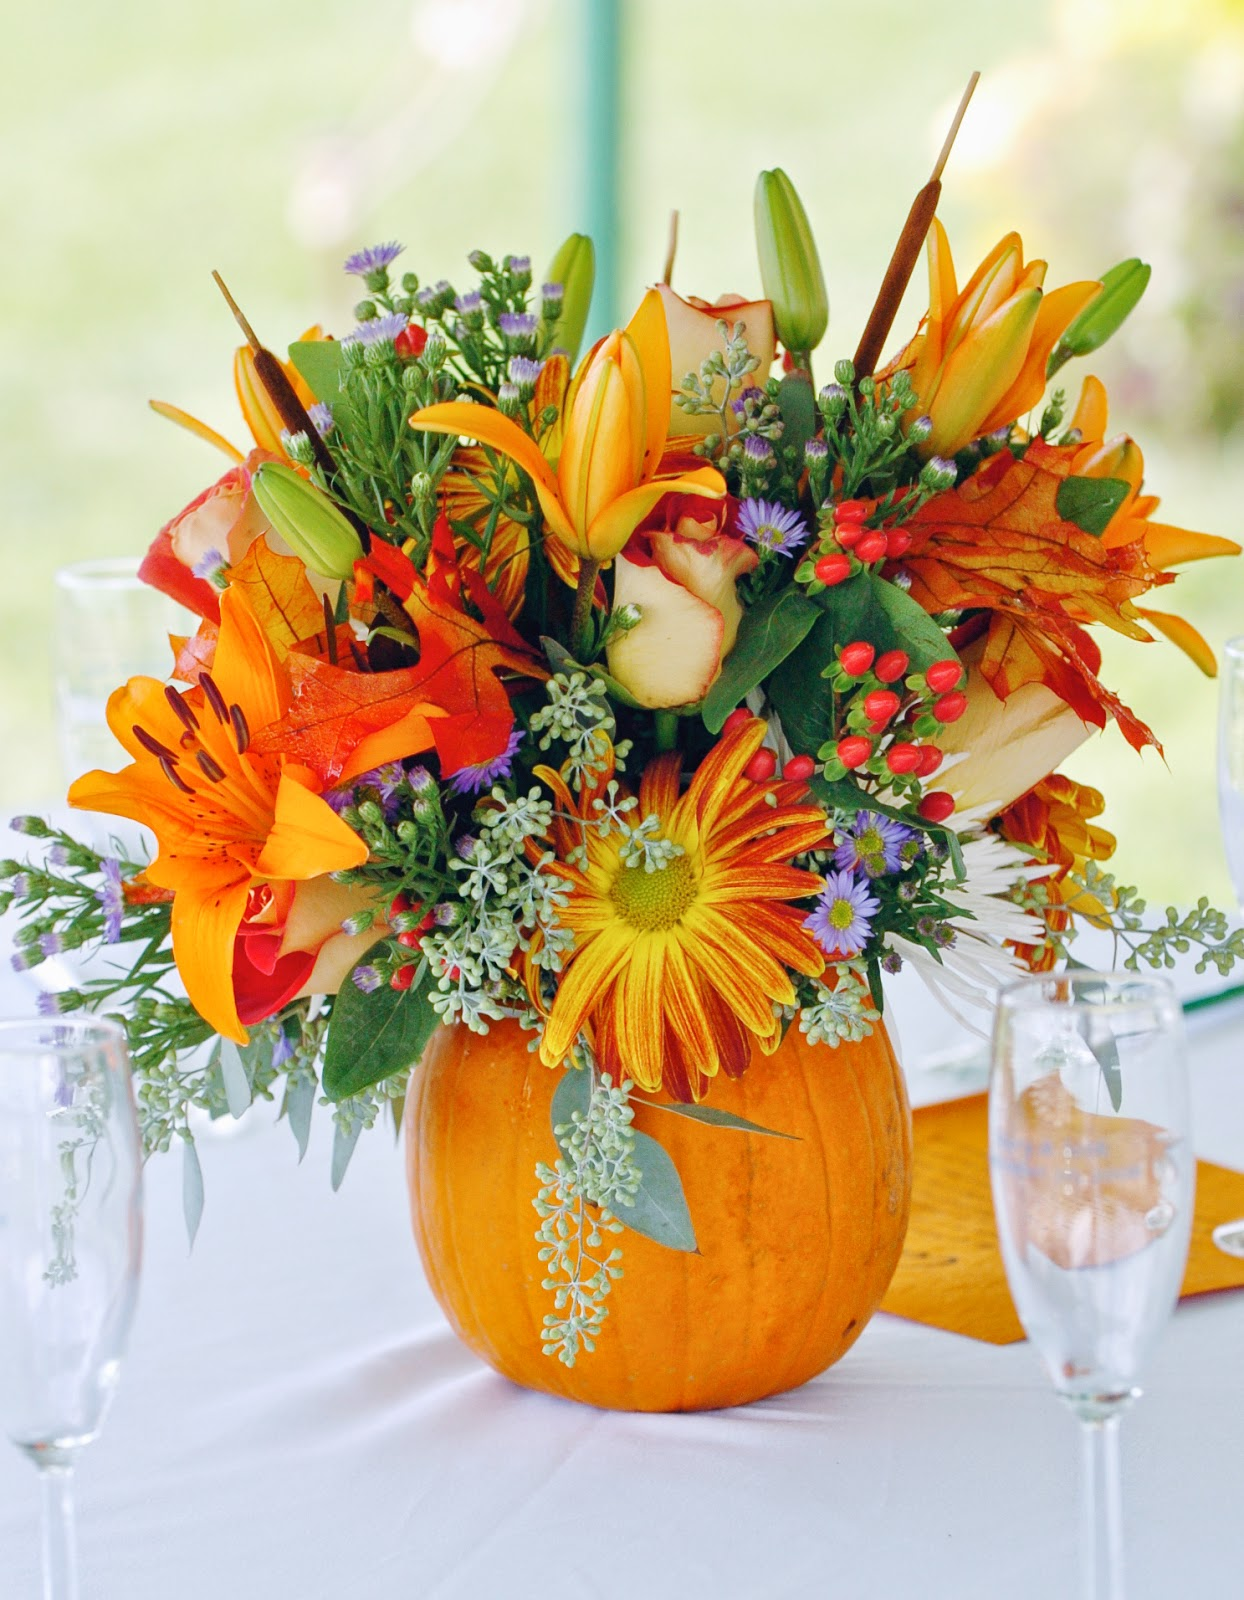 Fall wedding flower centerpieces wedding stuff ideas for Floral arrangements for wedding reception centerpieces